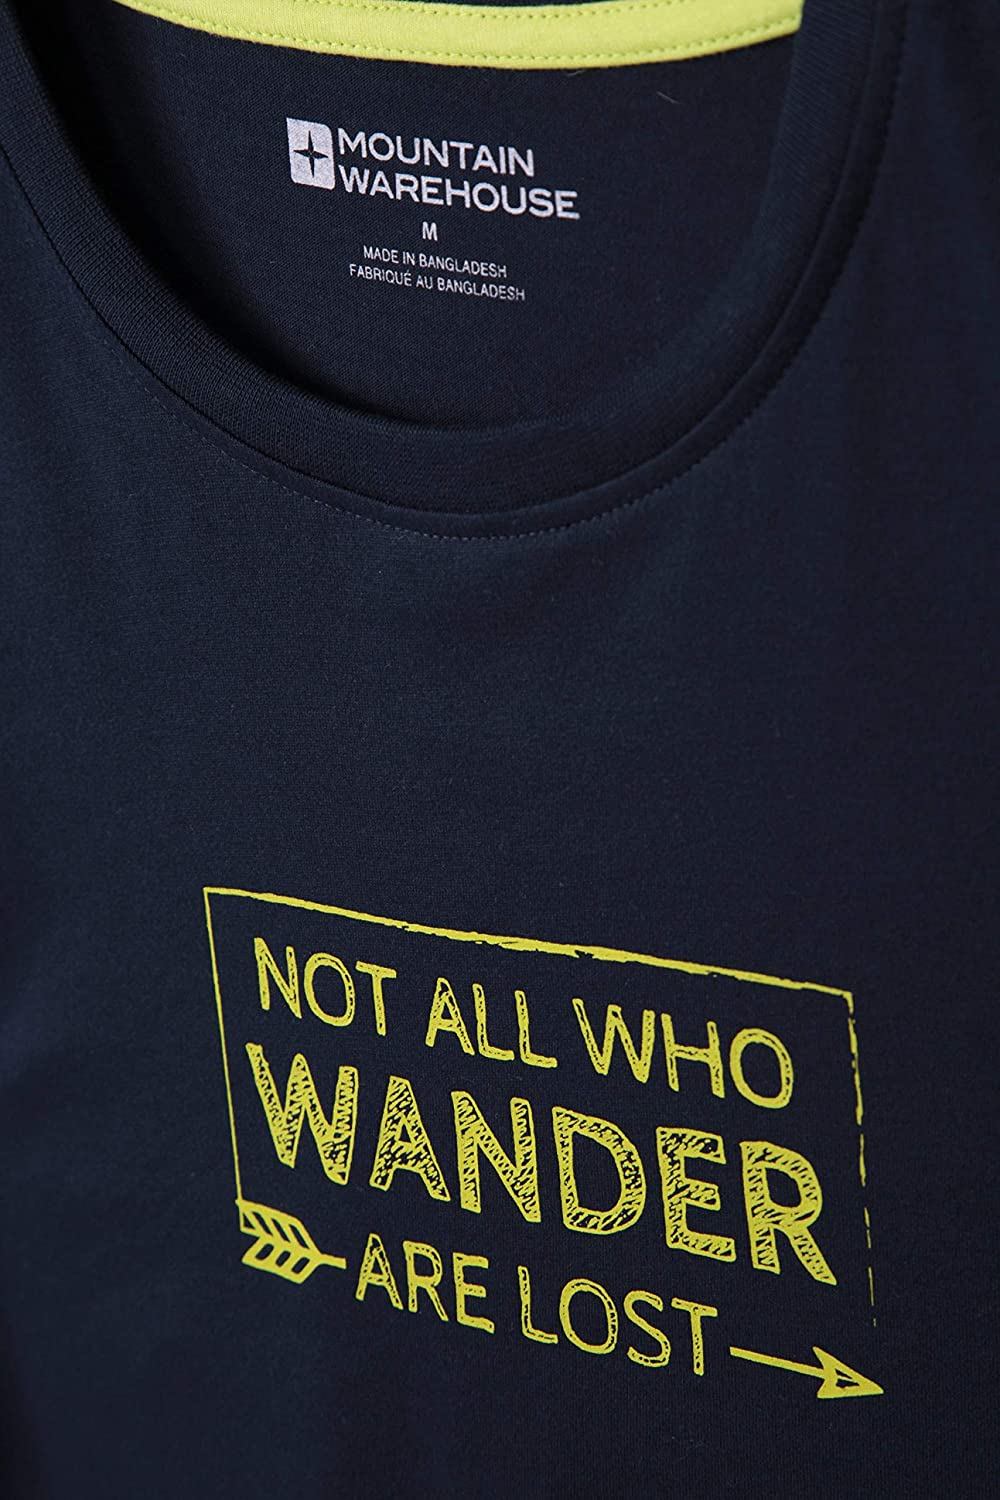 Mountain Warehouse Not All Who Wander Ii Mens Tee for Hiking Travelling Quality Funny Print Tee Shirt Easy Care Lightweight Spring T-Shirt Breathable